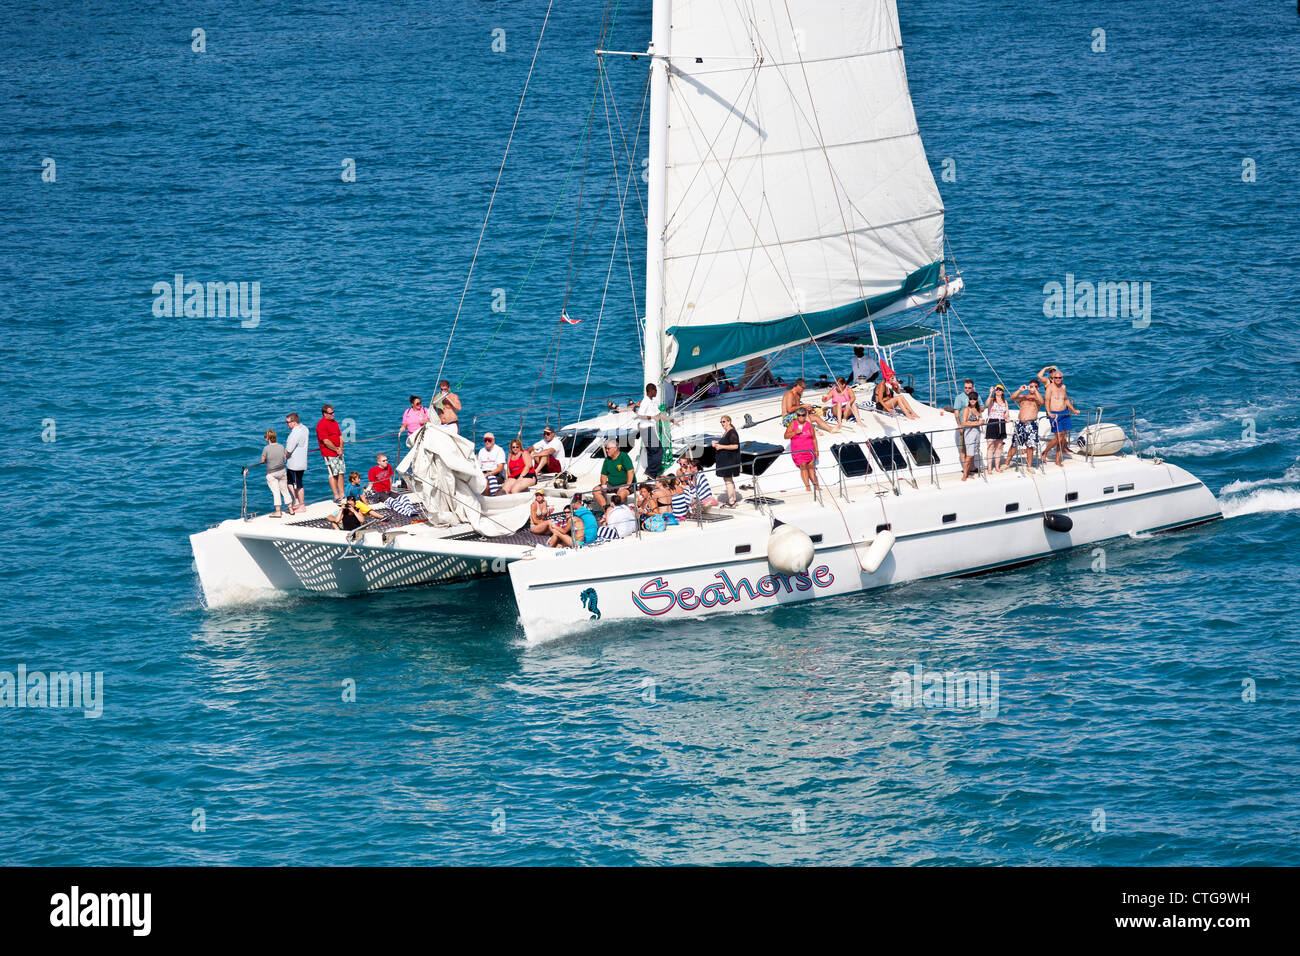 Cruise ship passengers on catamaran excursion tour in Nassau, Bahamas - Stock Image